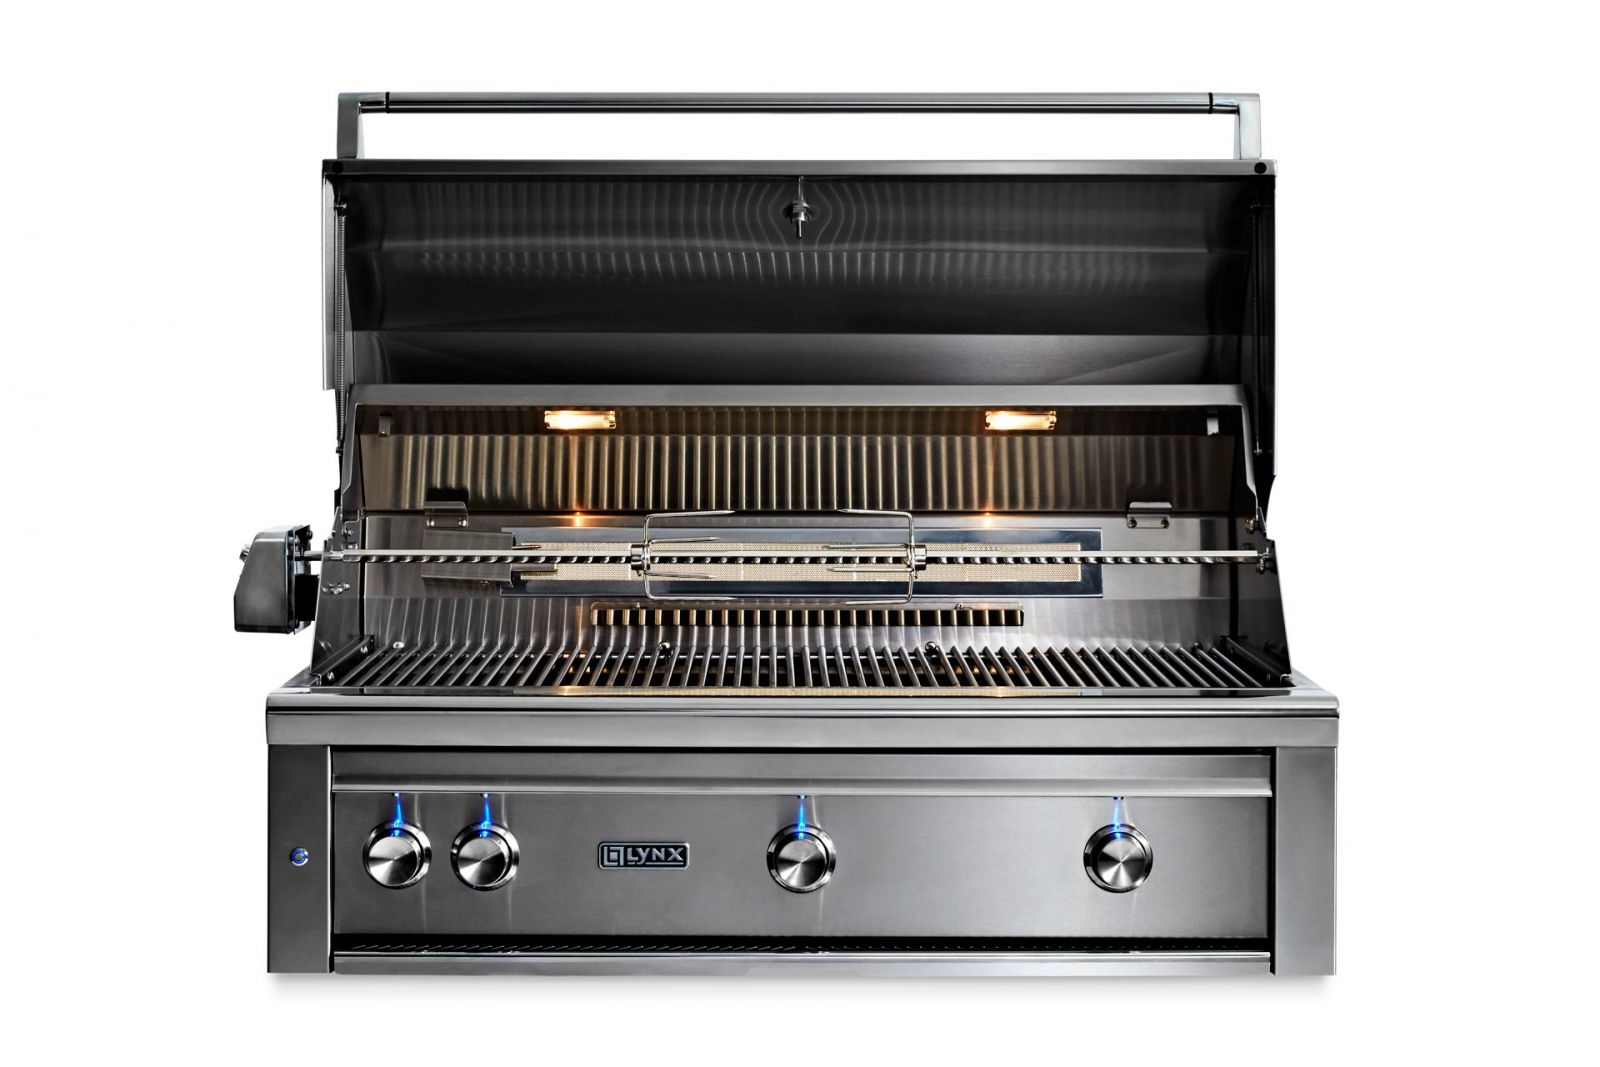 Lynx 42 Built In Grill With Rotisserie And 3 Trident